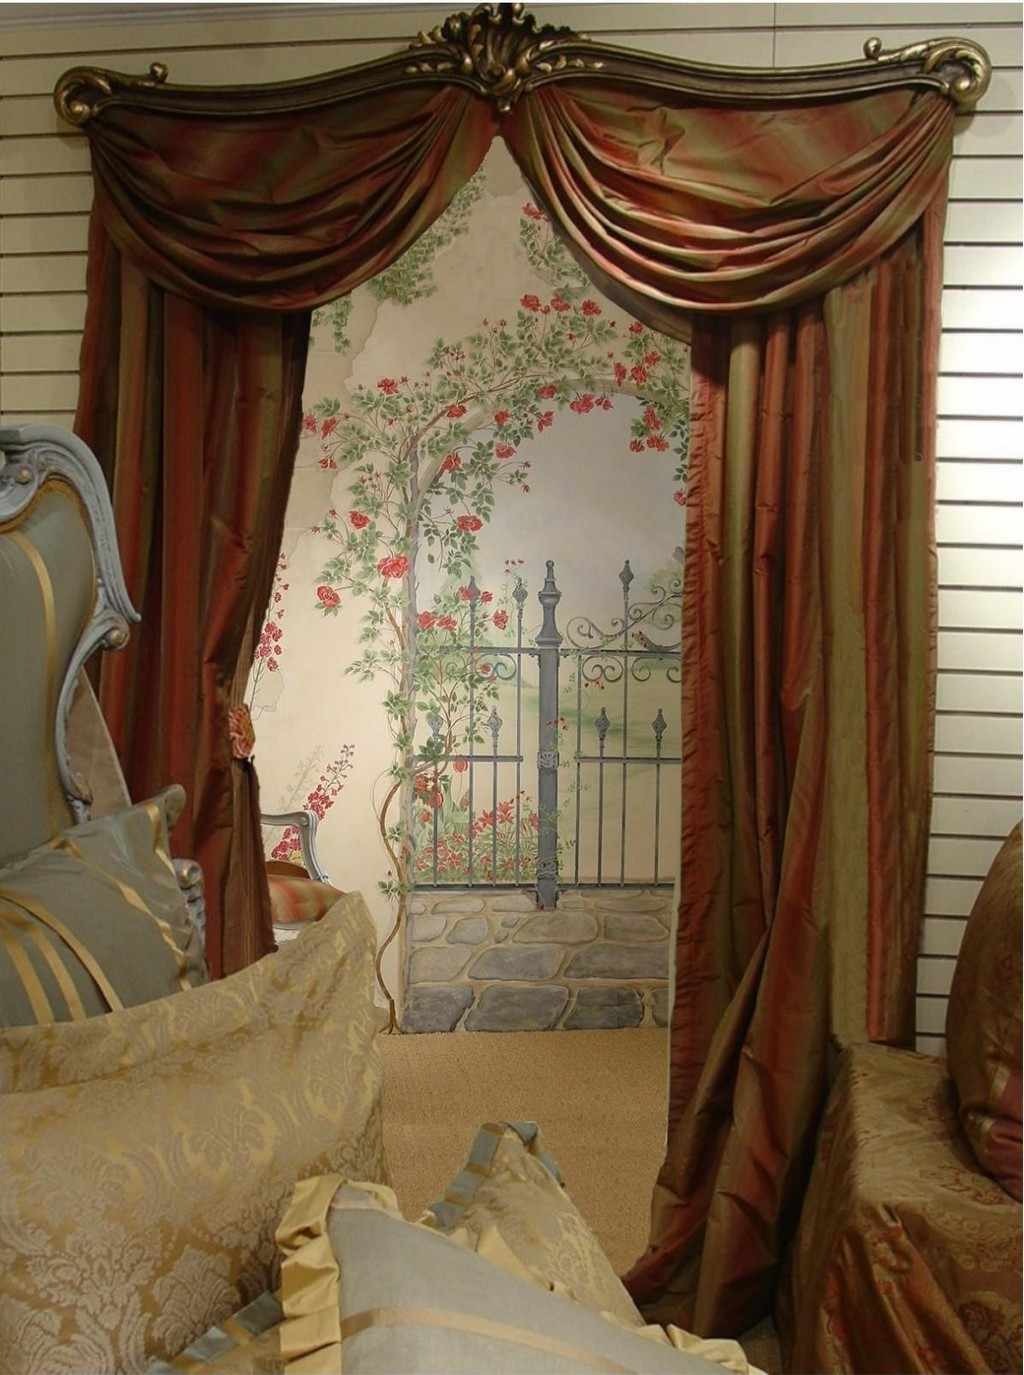 window curtains, wholesale table linens, bed comforters, kids area rug